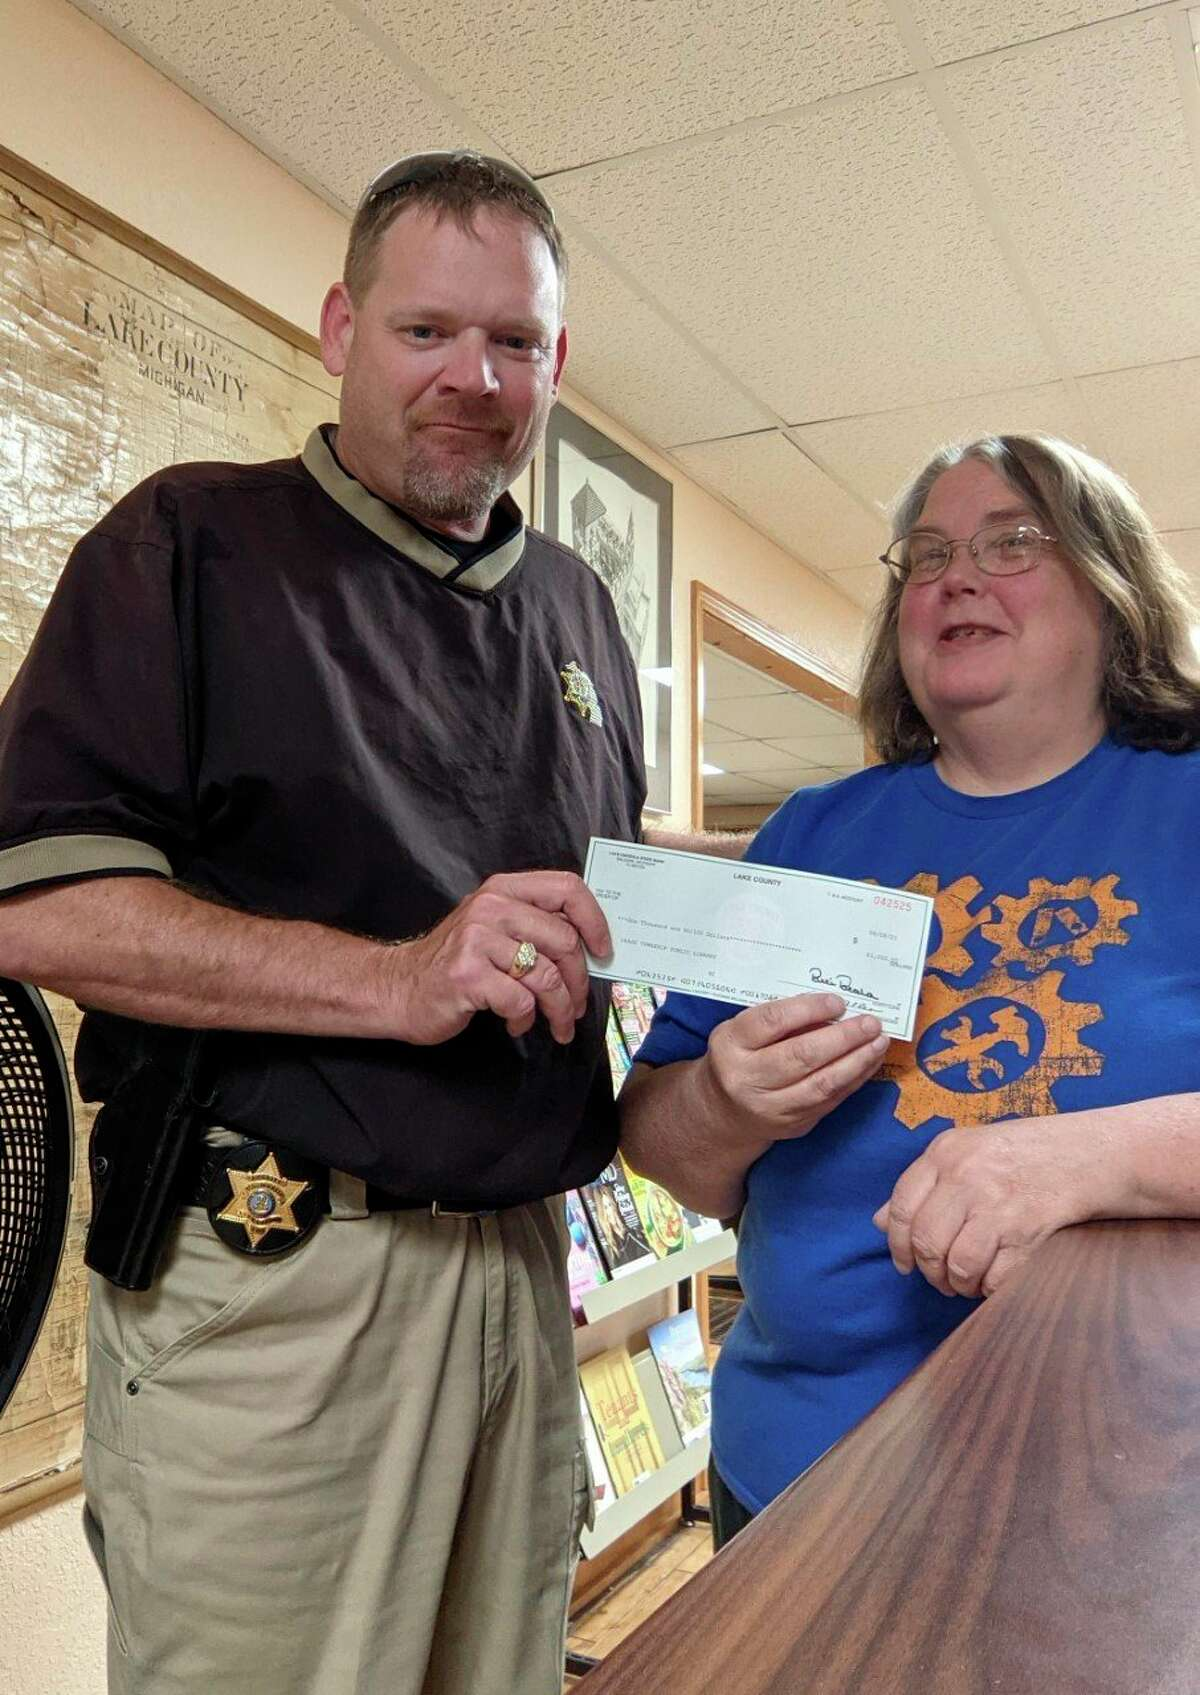 Lake County Sheriff Rich Martin presented Chase Public Library with a donation of $1000 this week as part of the Sheriff's Charitable Campaign. (Submitted photo)